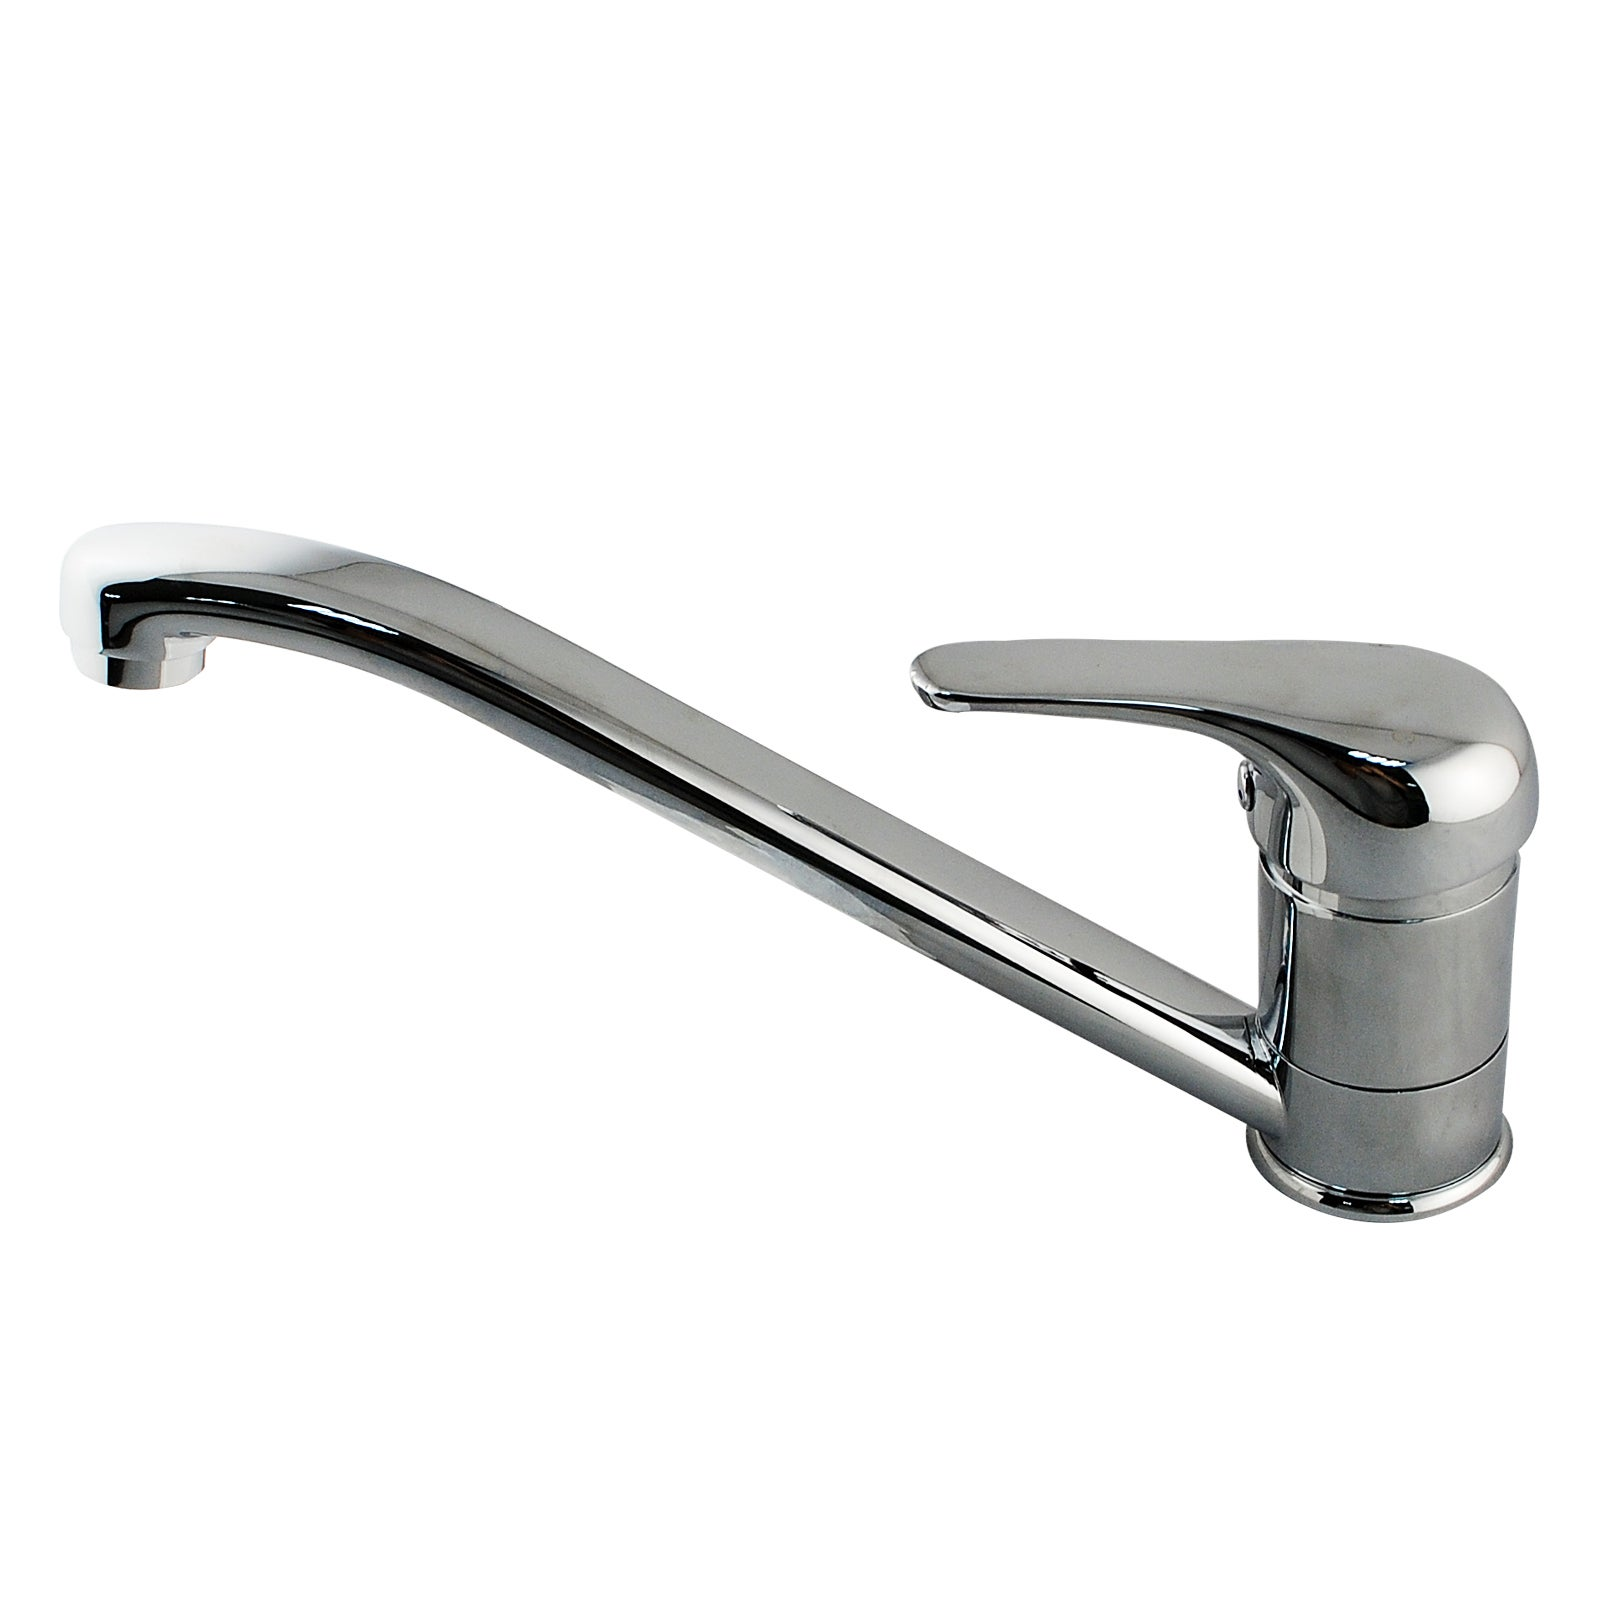 Kitchen Chrome Mixer Tap 360 degree Swivel Spout Vanity Bathroom tap Watermarked & WELS